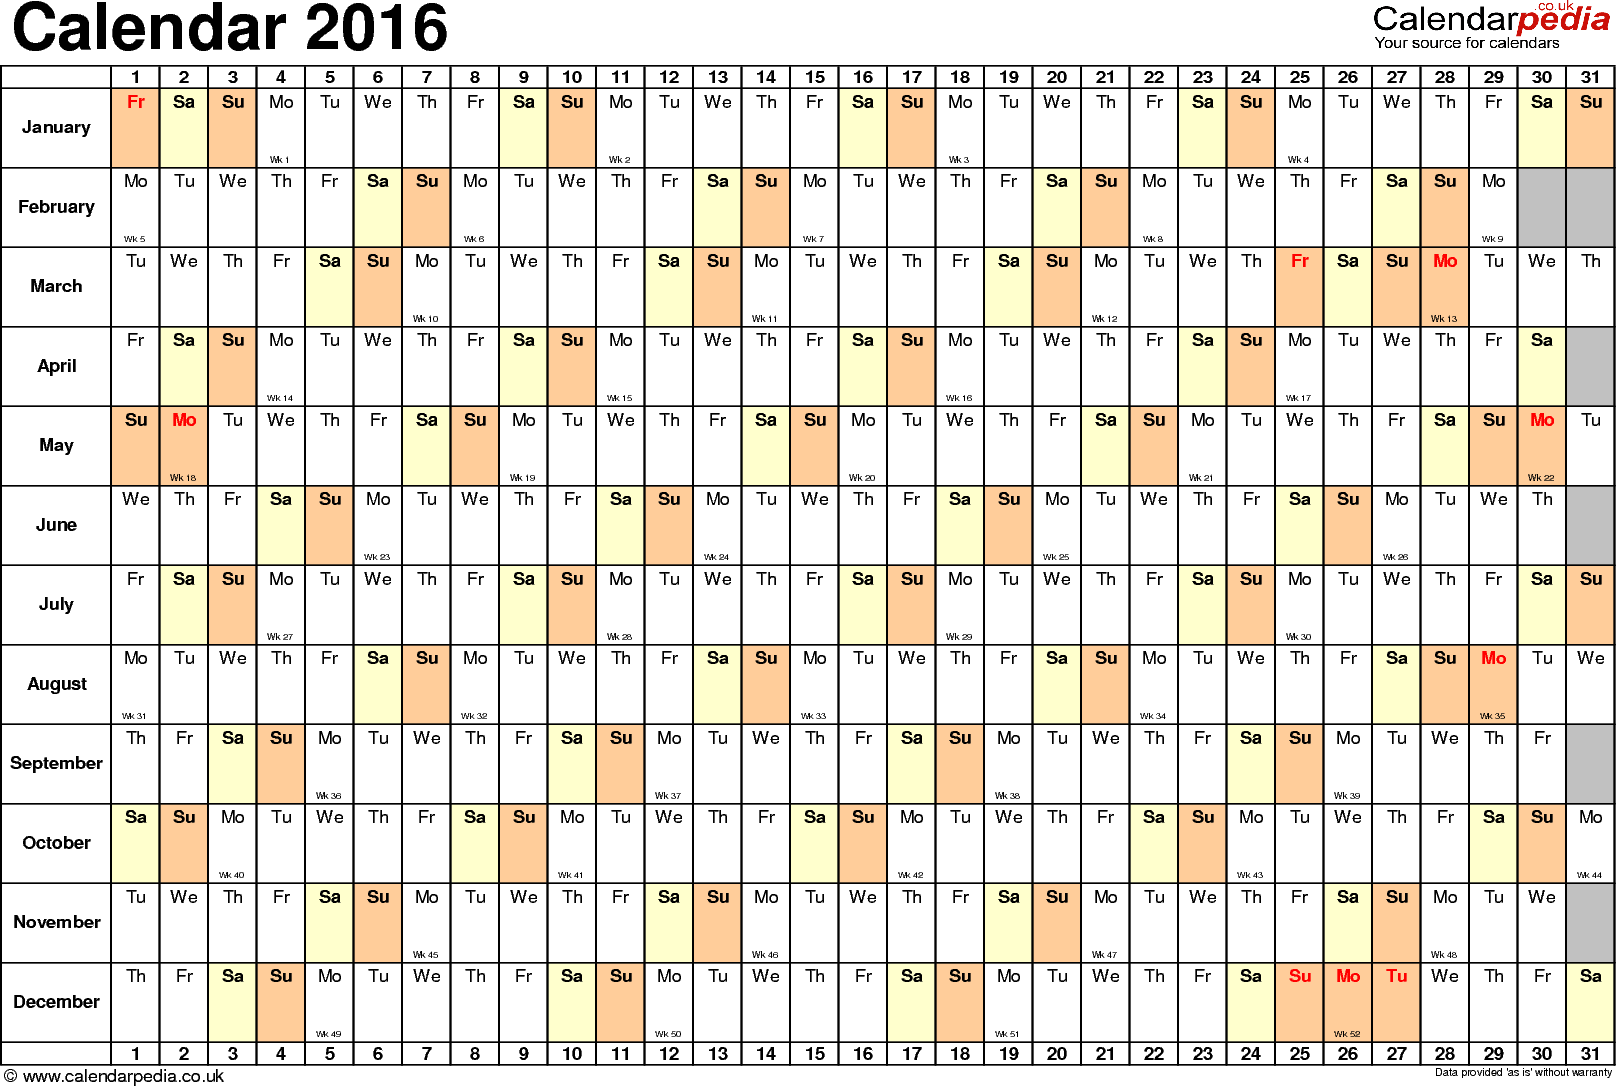 Download Template 6: Yearly calendar 2016 as PDF template, landscape orientation, 1 page, linear (days horizontally, months vertically), with UK bank holidays and week numbers